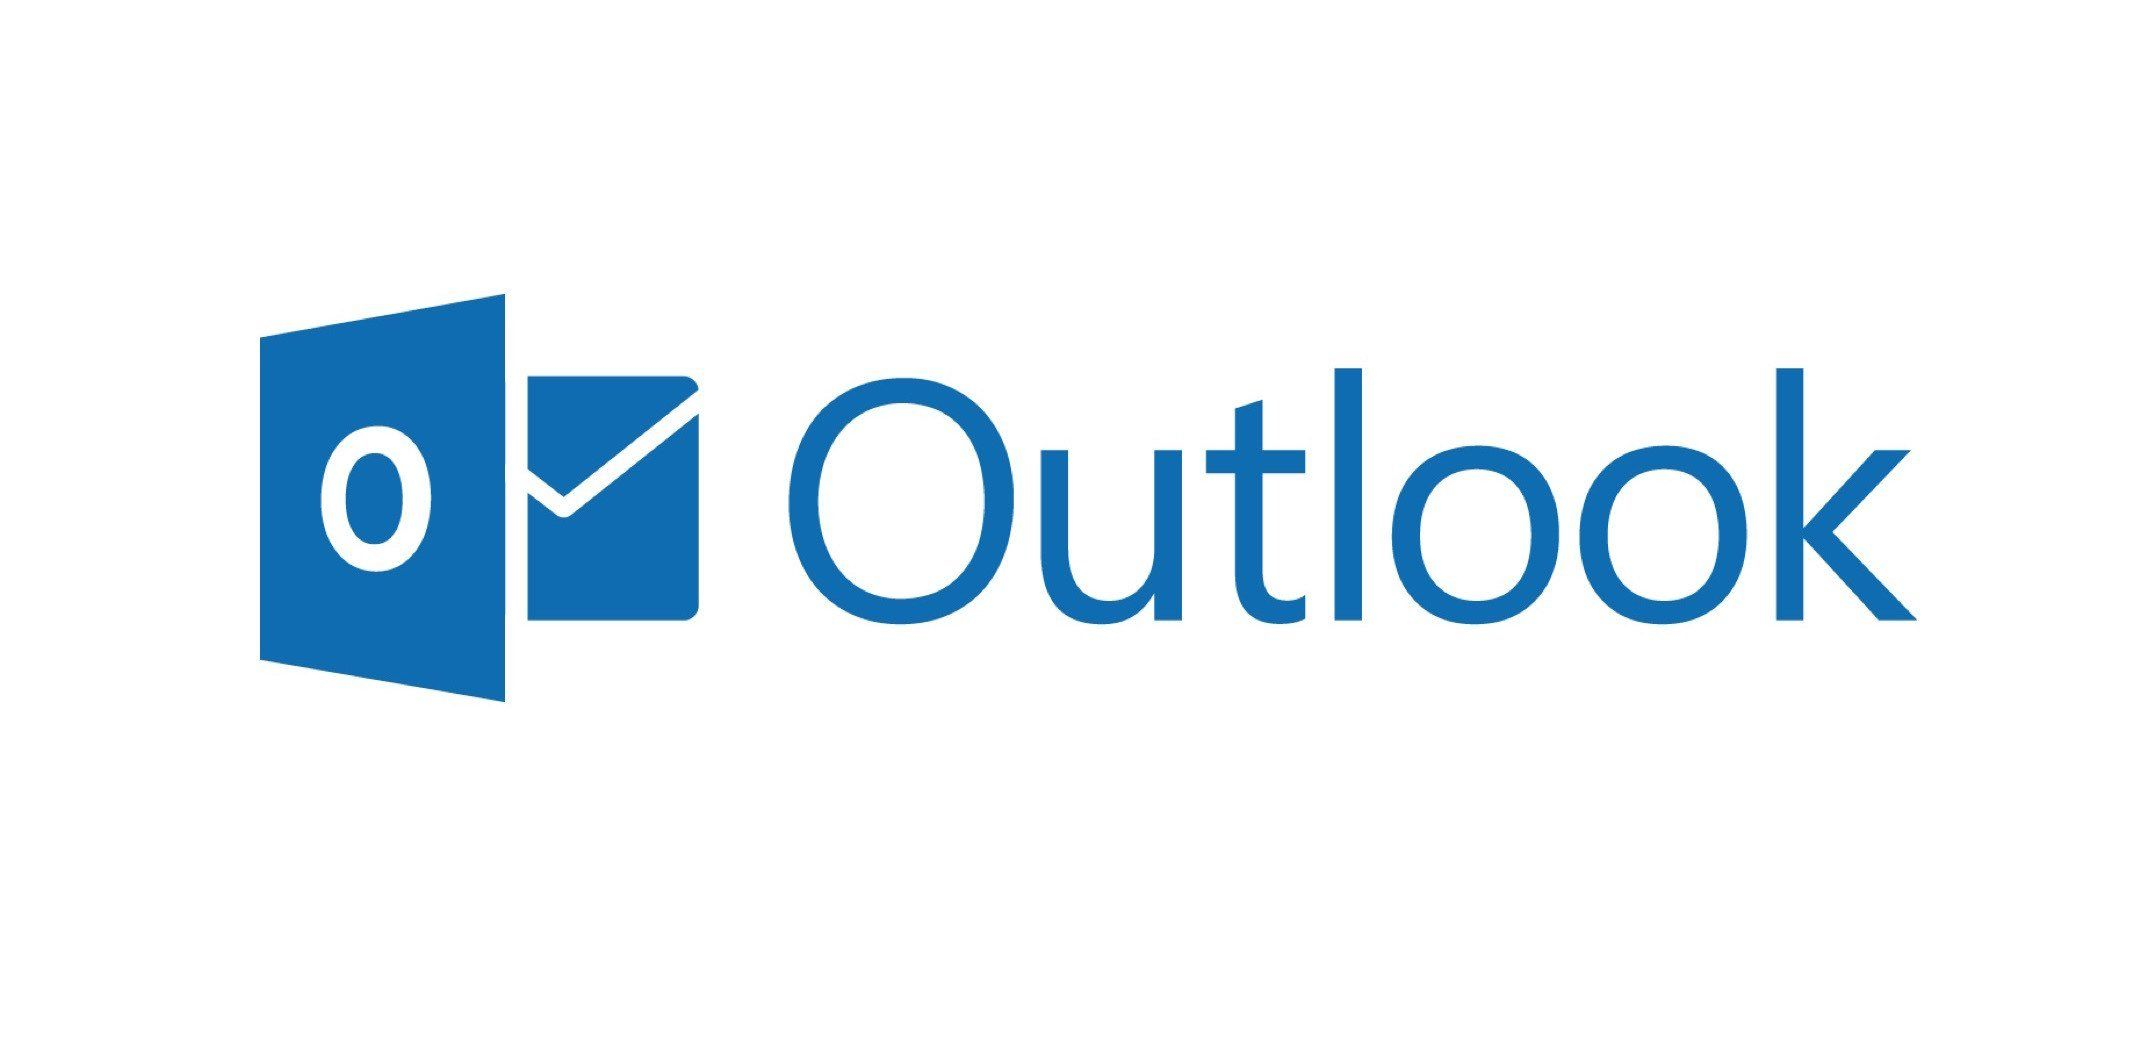 How To Know About The Process Of Configuring RR Com Email With MS Outlook  2016? in 2020 | Advertising logo, Outlook, Microsoft